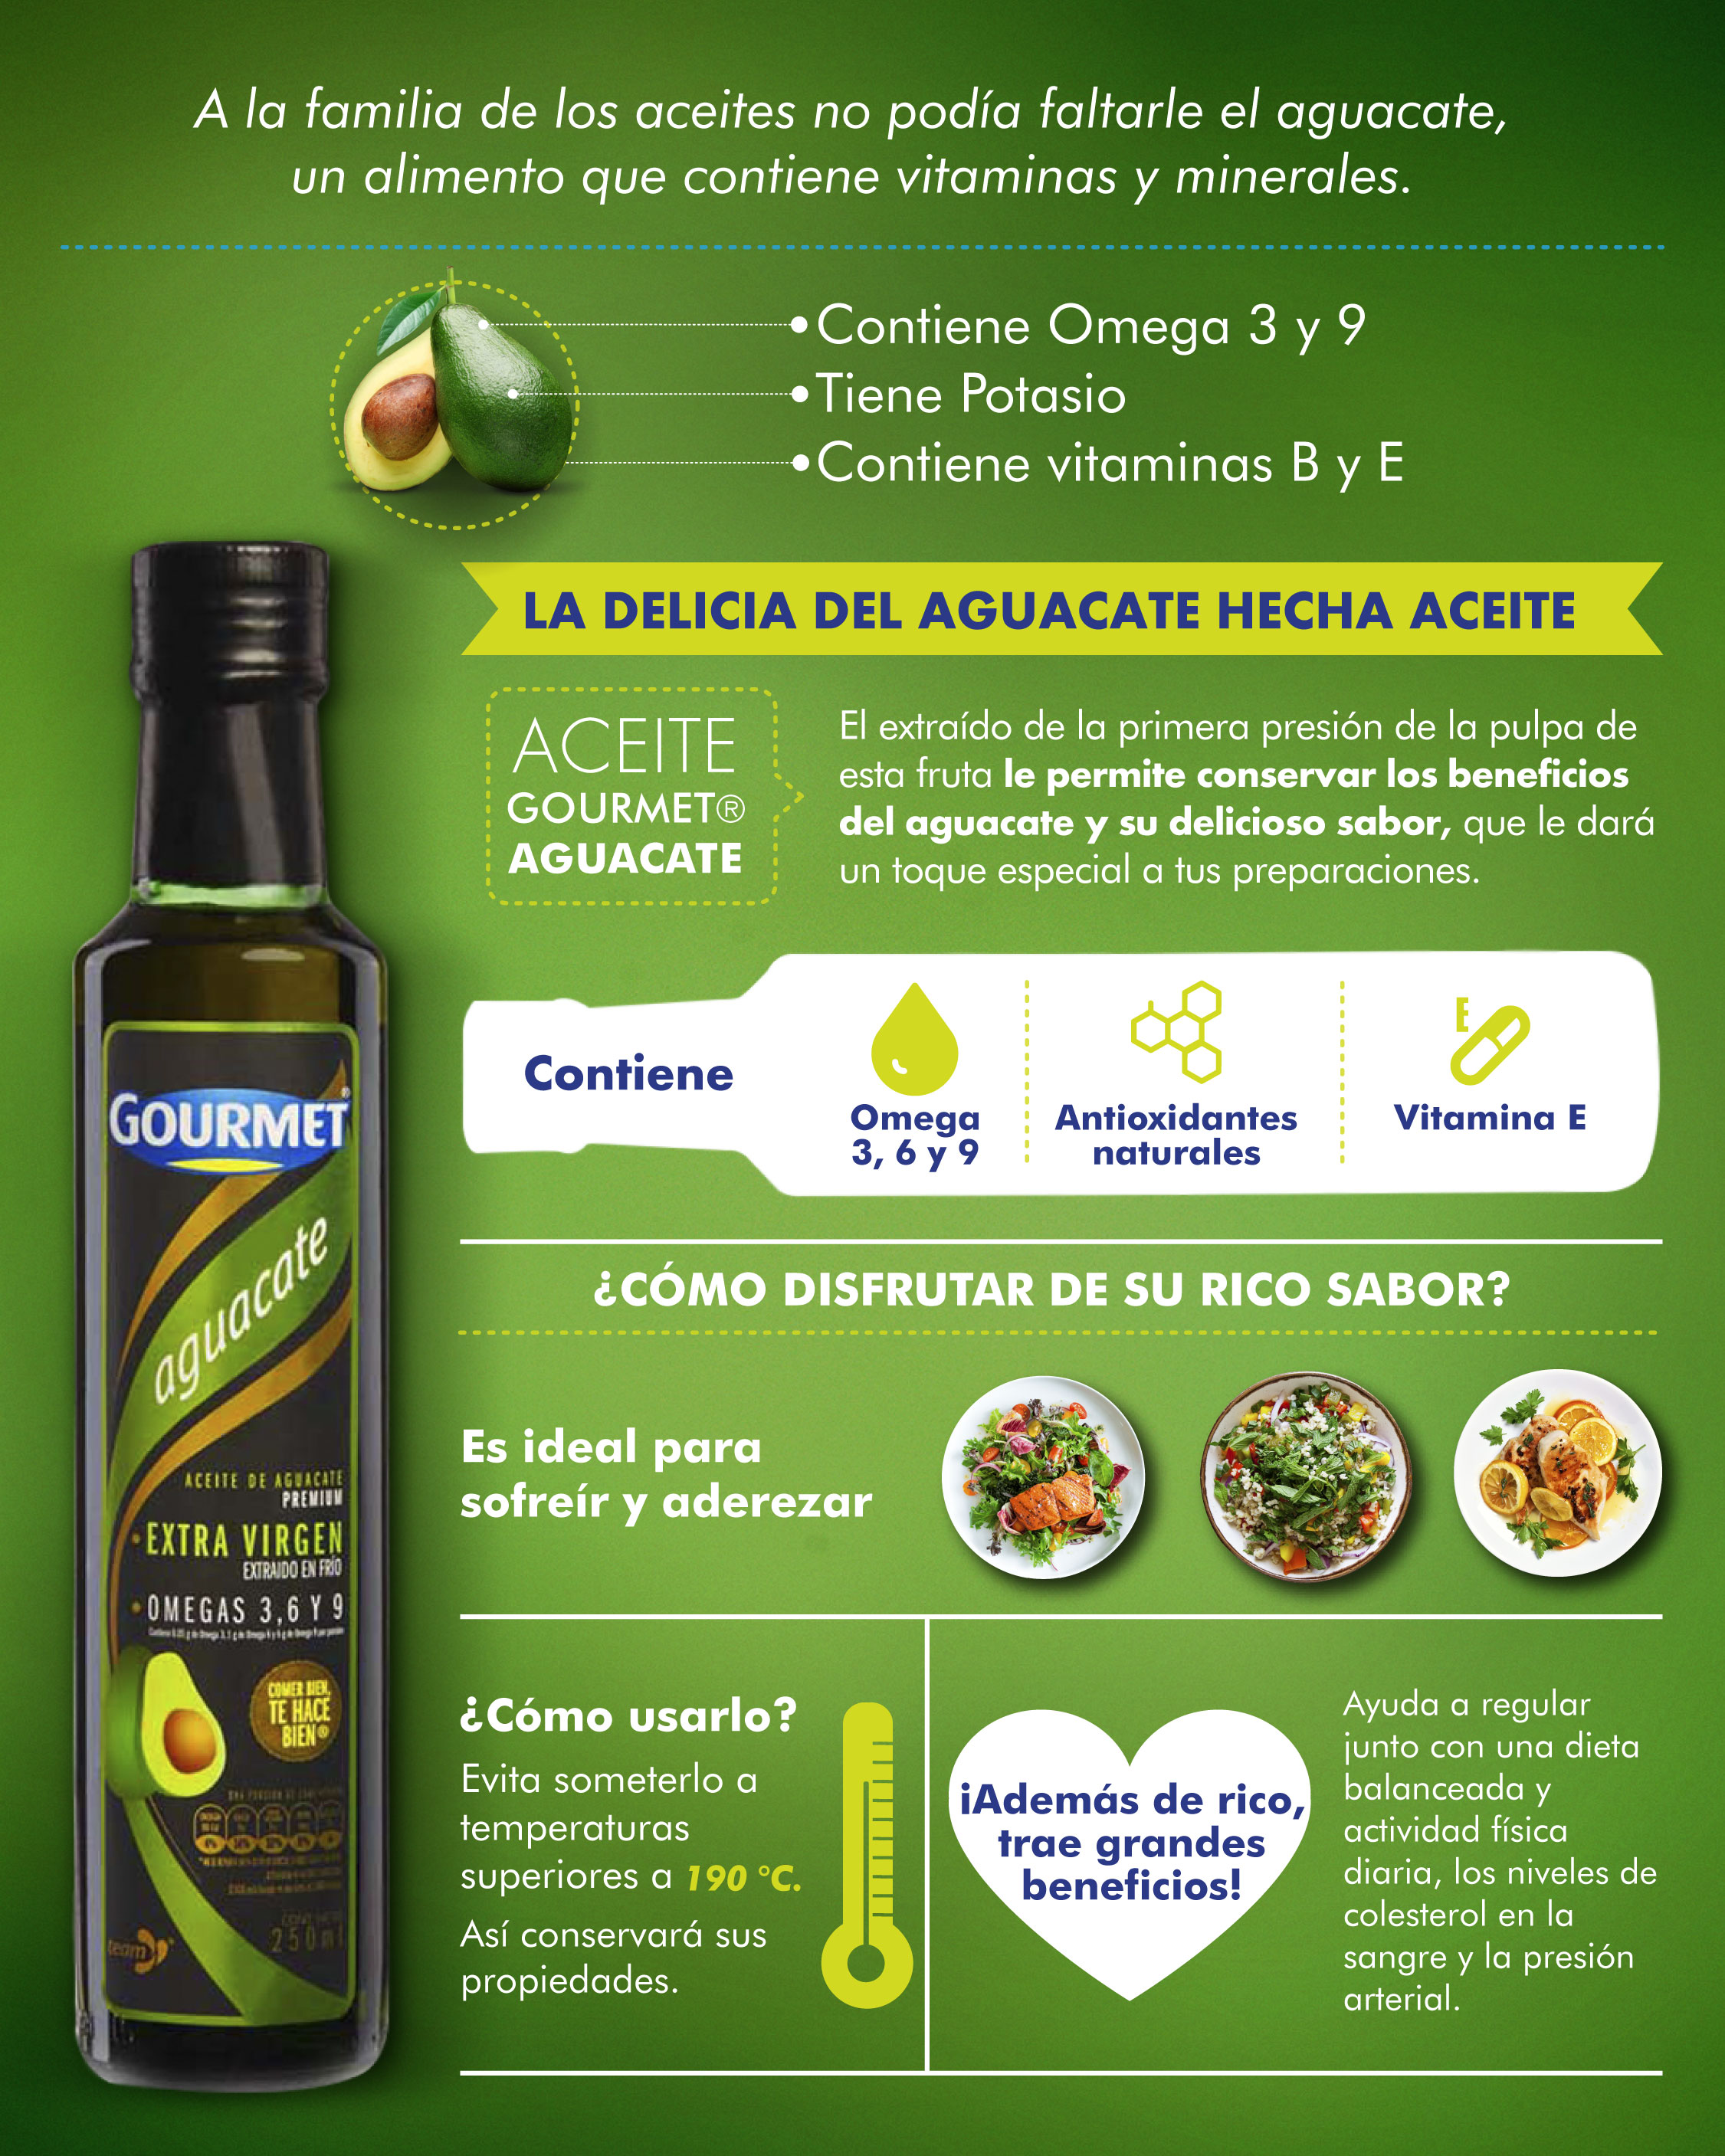 Aceite Gourmet Aguacate